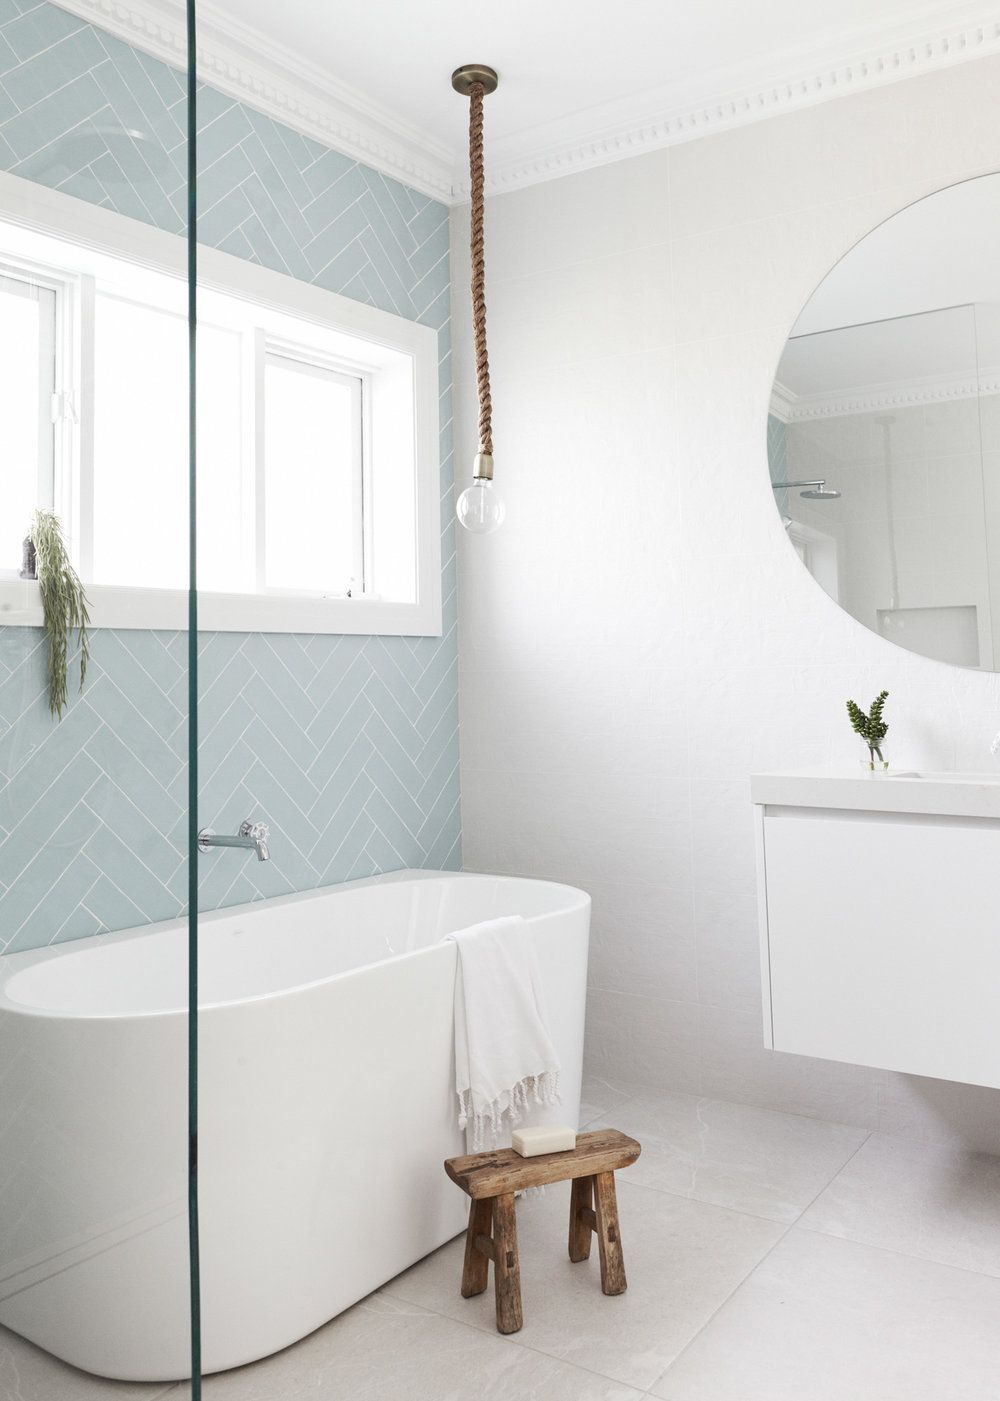 A Well Decorated Bathroom Can Do Wonders To An Interior Design  # Meuble Design Zein Chloe